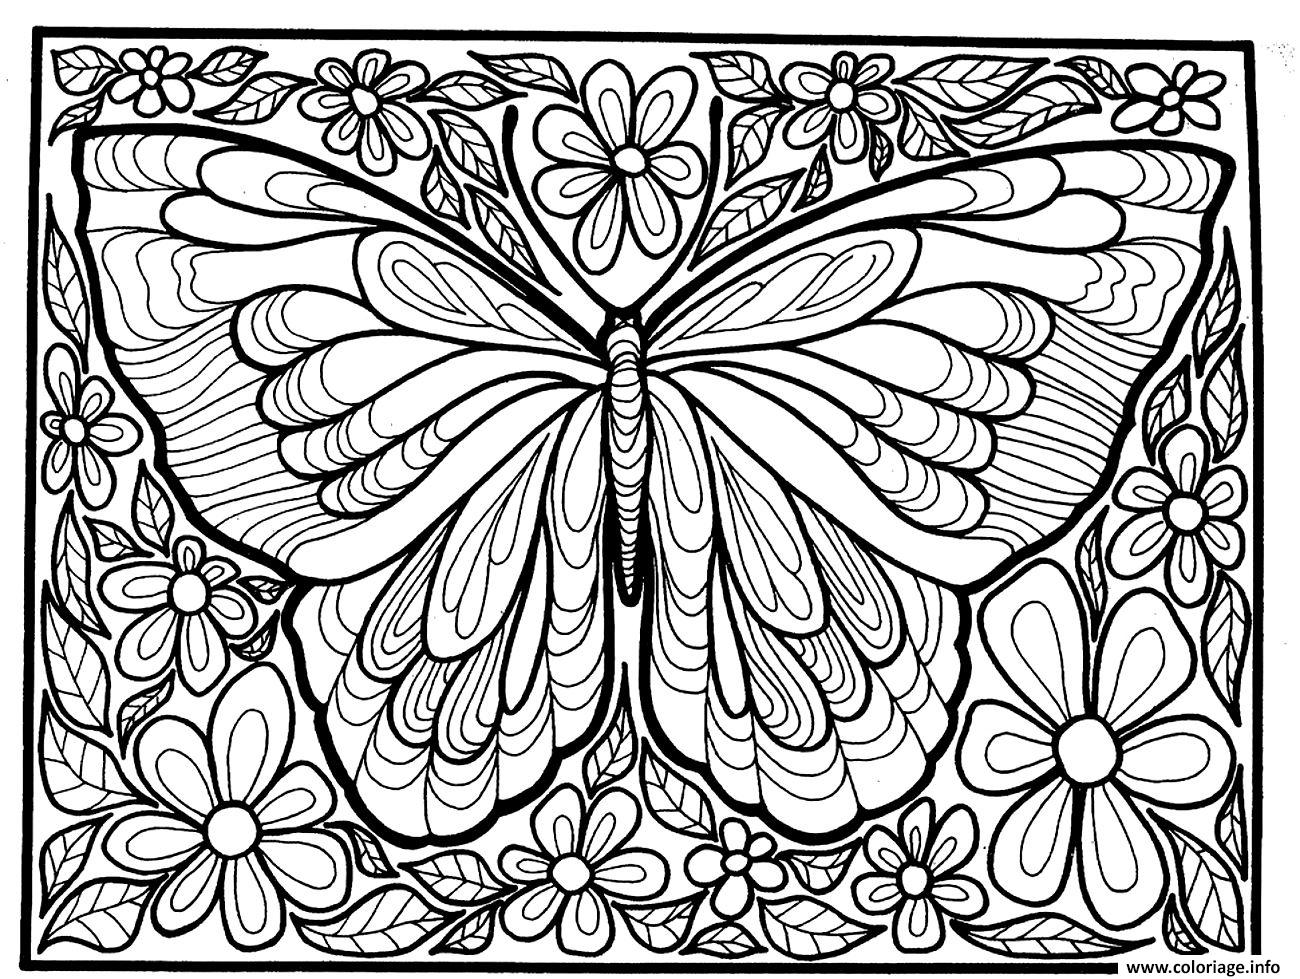 coloriage adulte difficile grand papillon dessin gratuit